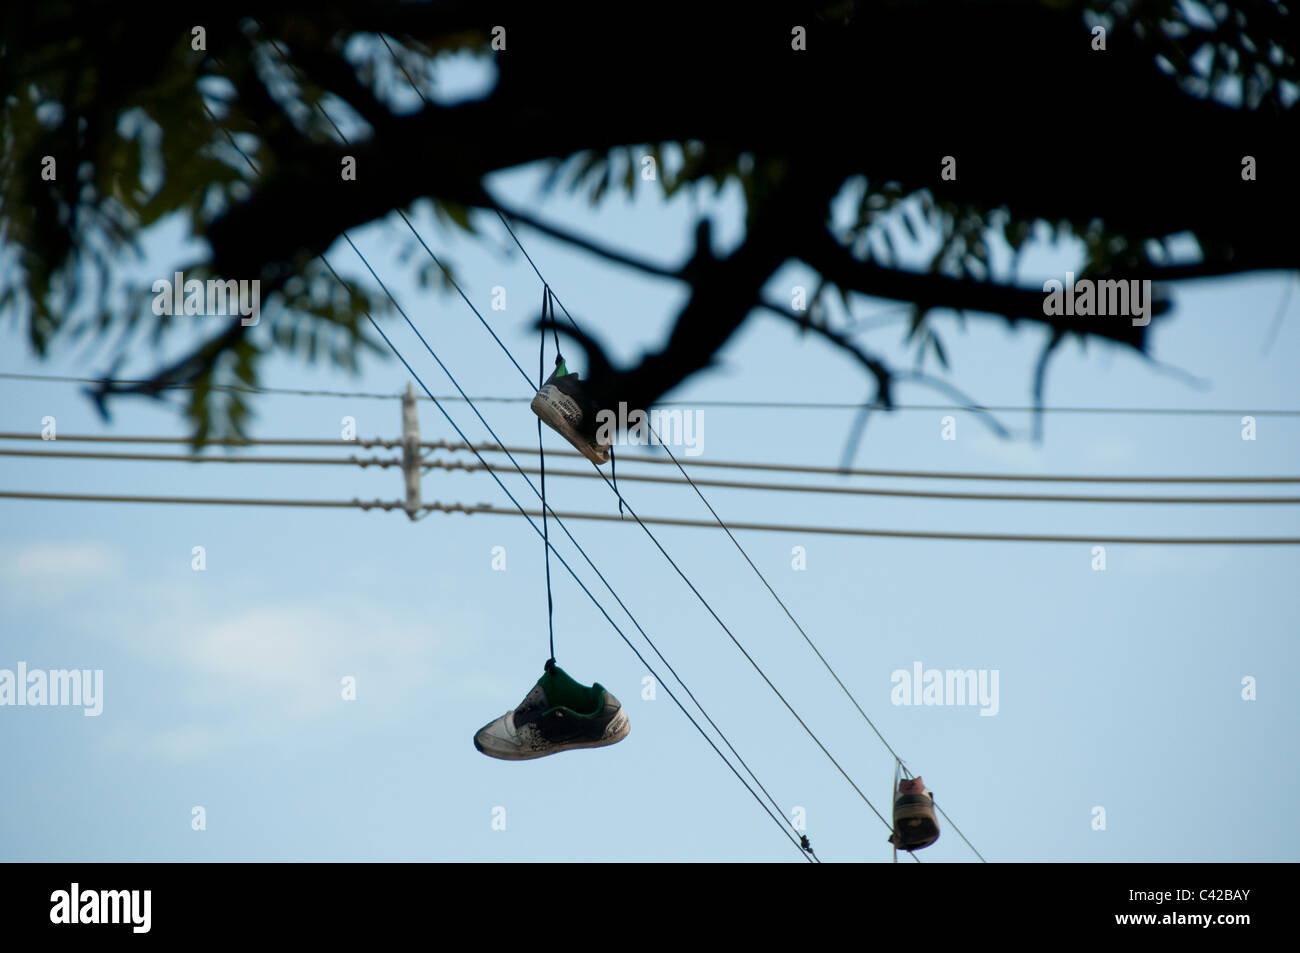 Shoes thrown over wires are a symbol of local gangs - Stock Image